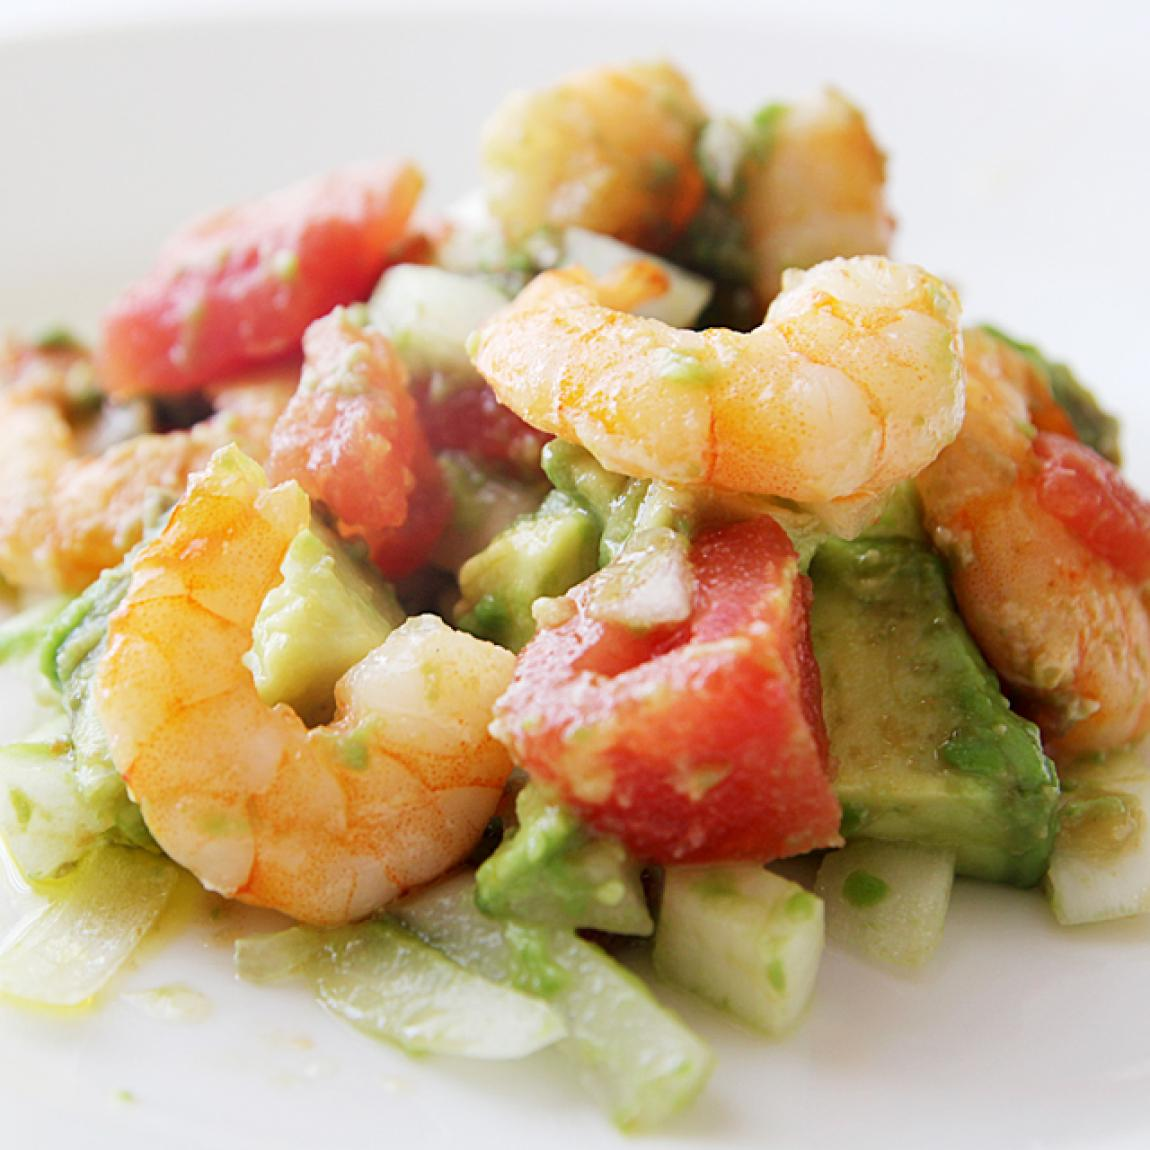 Avocado and Shrimp Salad Recipe | Just A Pinch Recipes